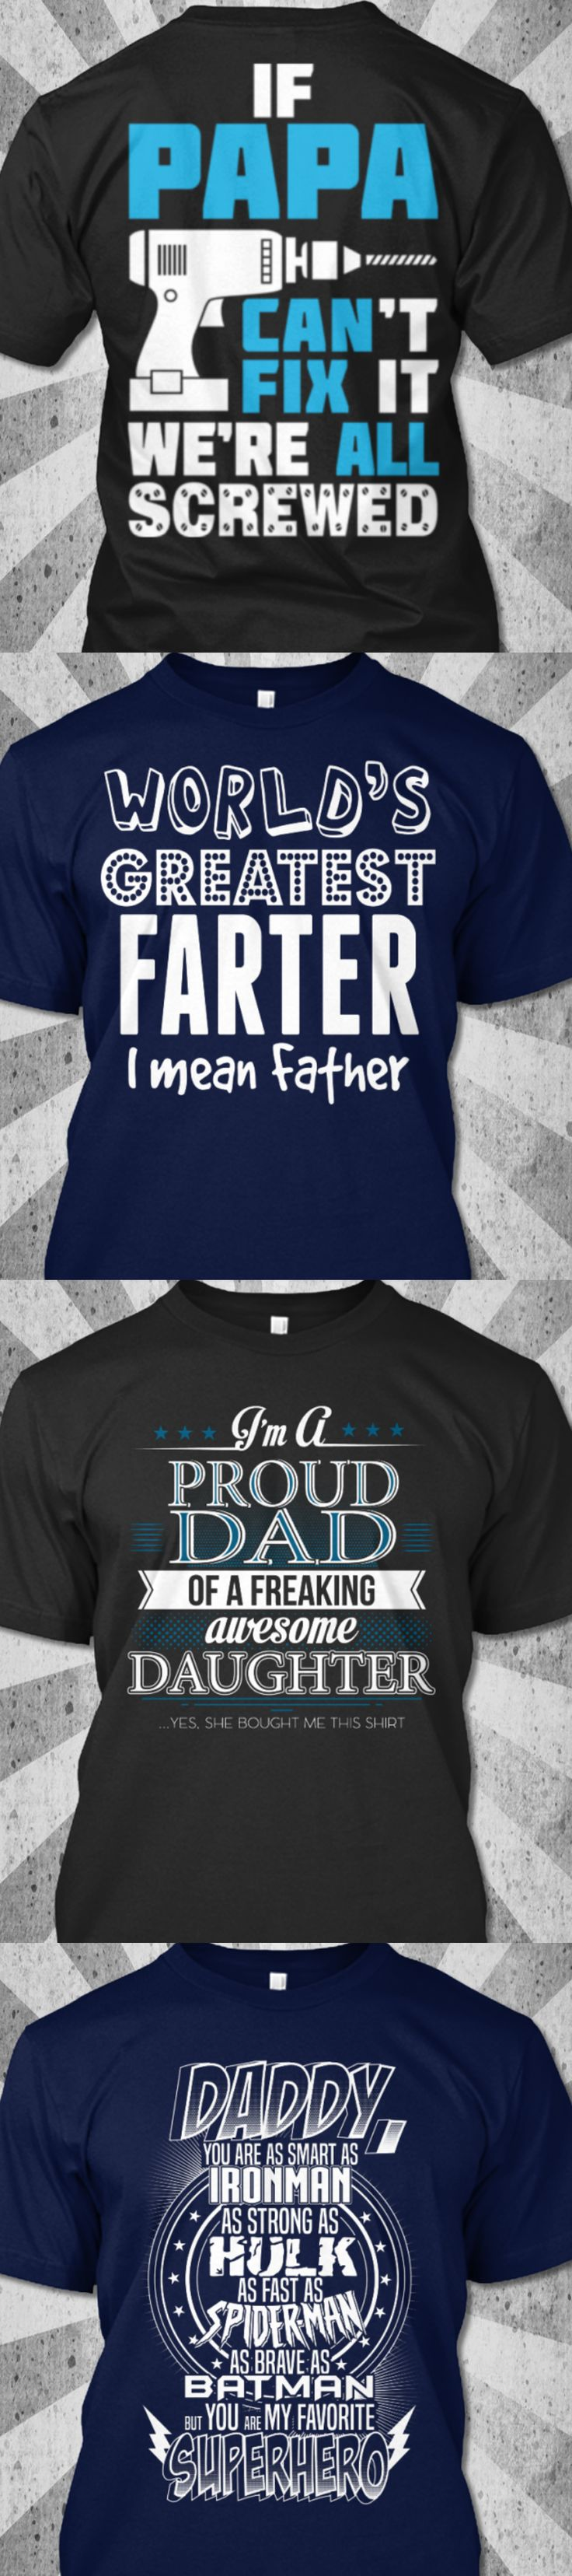 Looking for unique Father's Day Gifts? Check out our best sell Father's Day t-shirts! FREE Shipping this week only on all items! Get the perfect gift for your husband, Dad or Grandpa